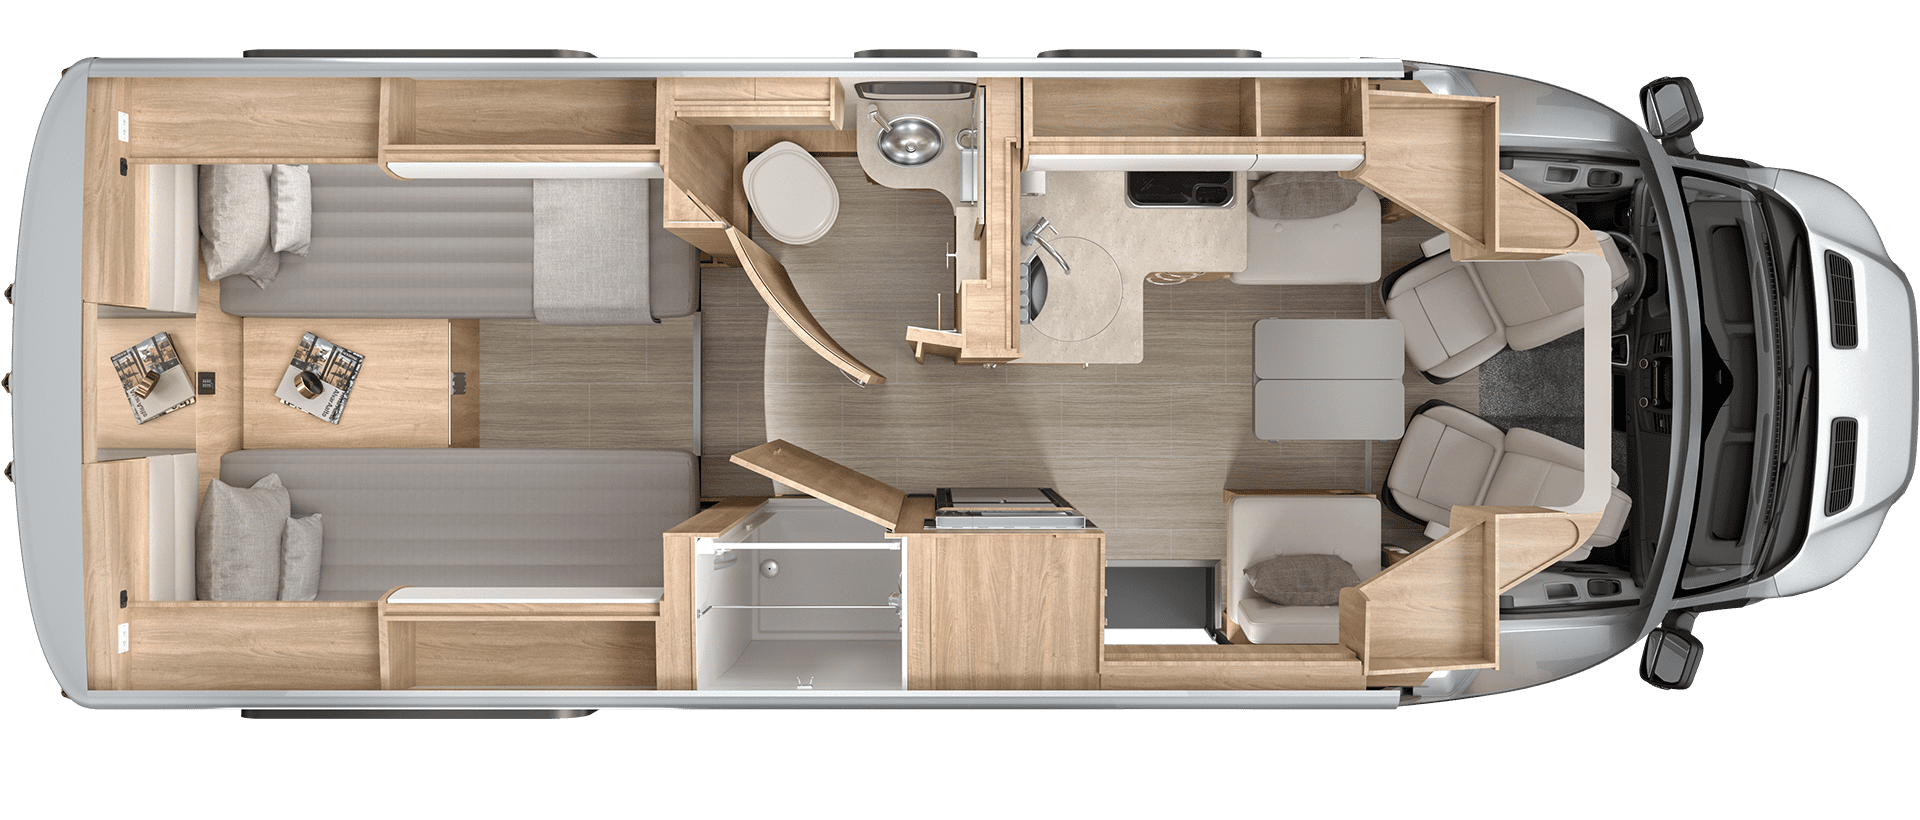 Wonder Rear Twin Bed Floorplan